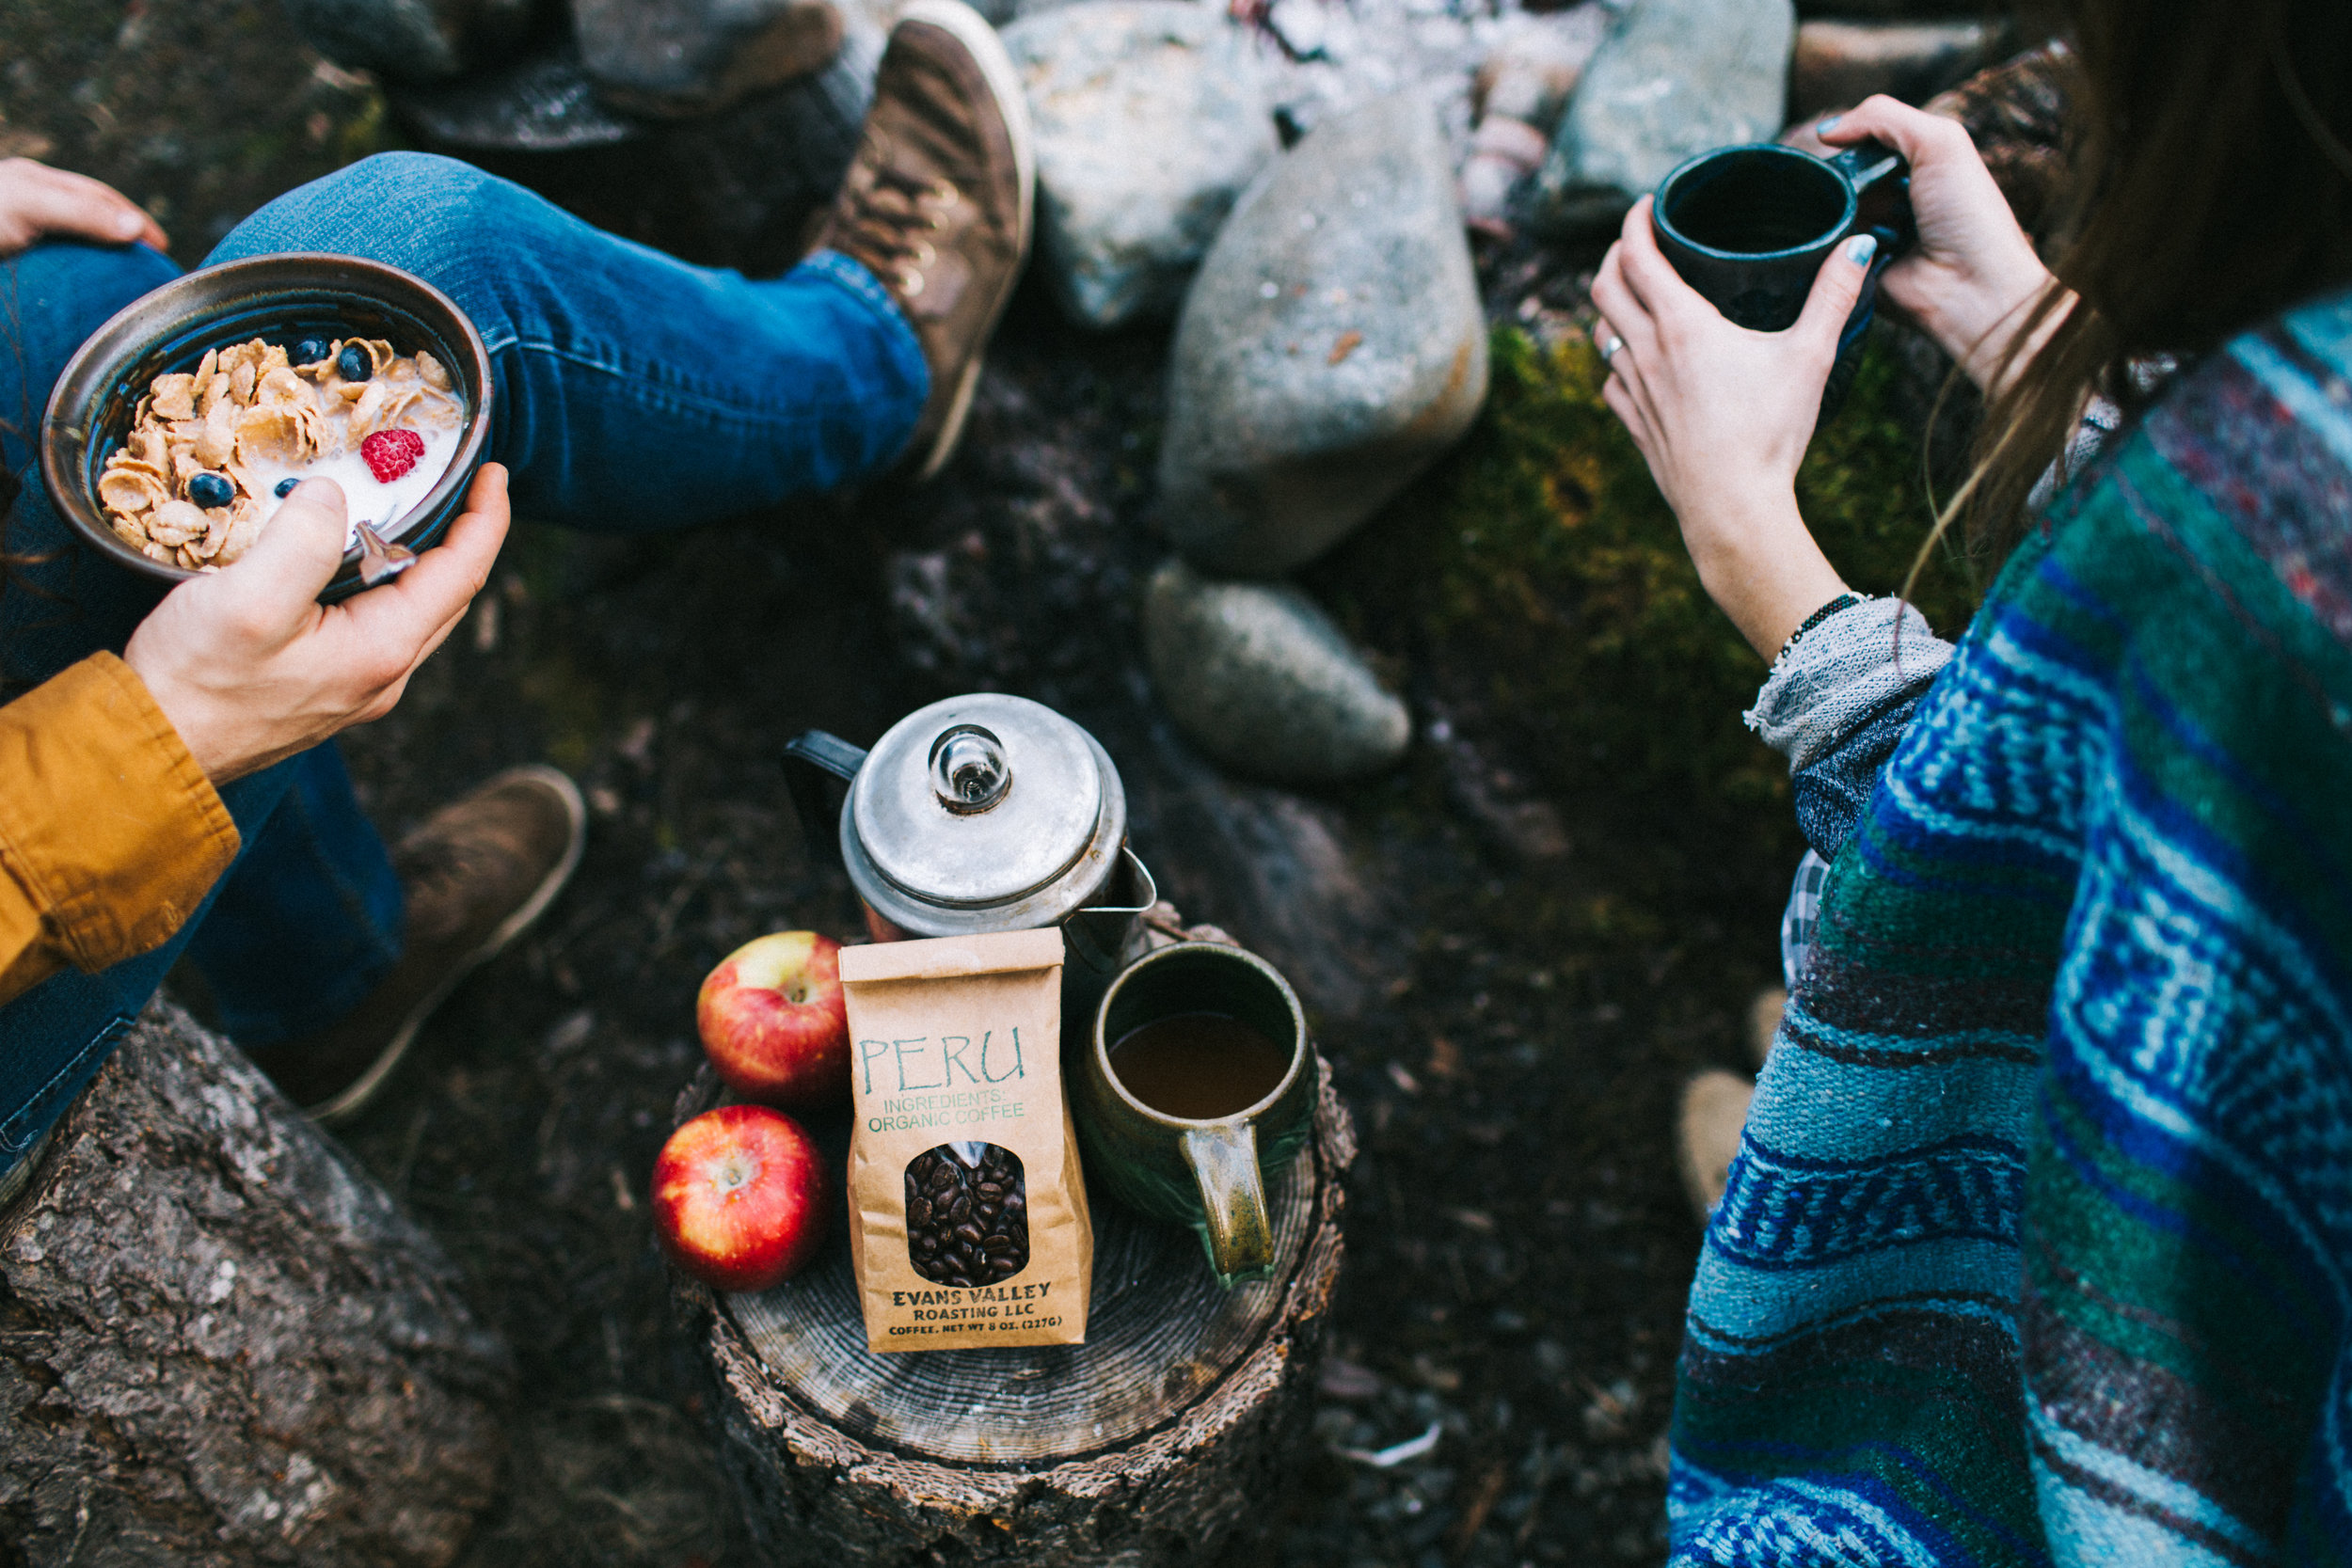 Evan's Valley Roasting | Lifestyle Photography